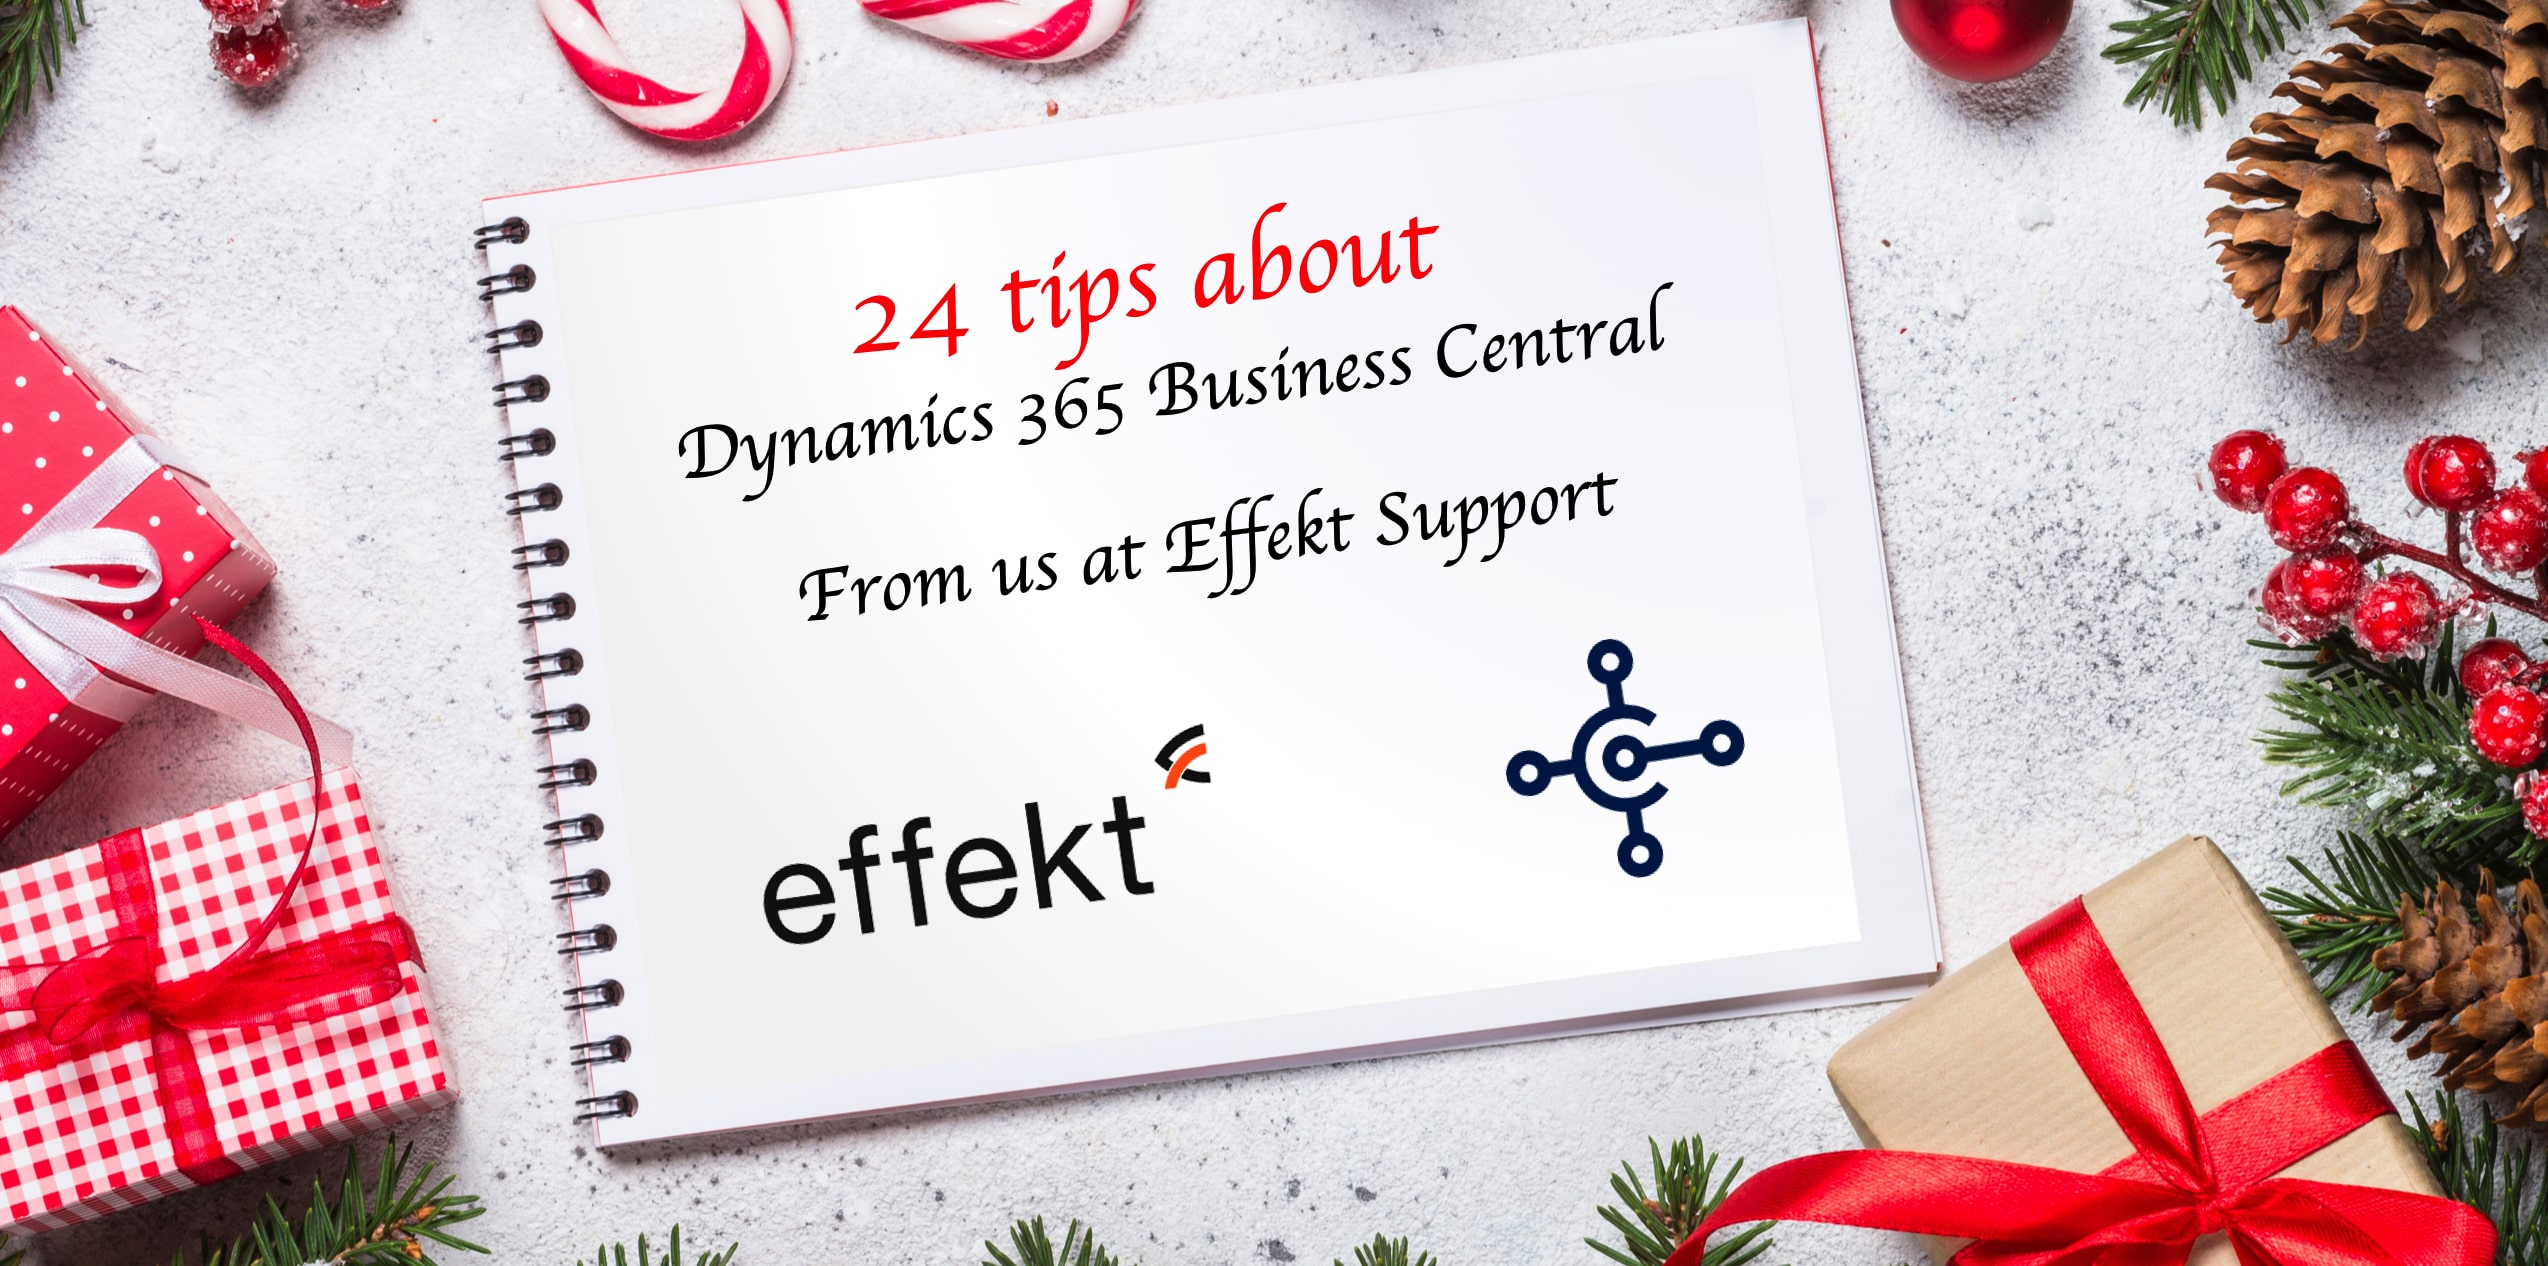 24 tips about Dynamics 365 Business Central